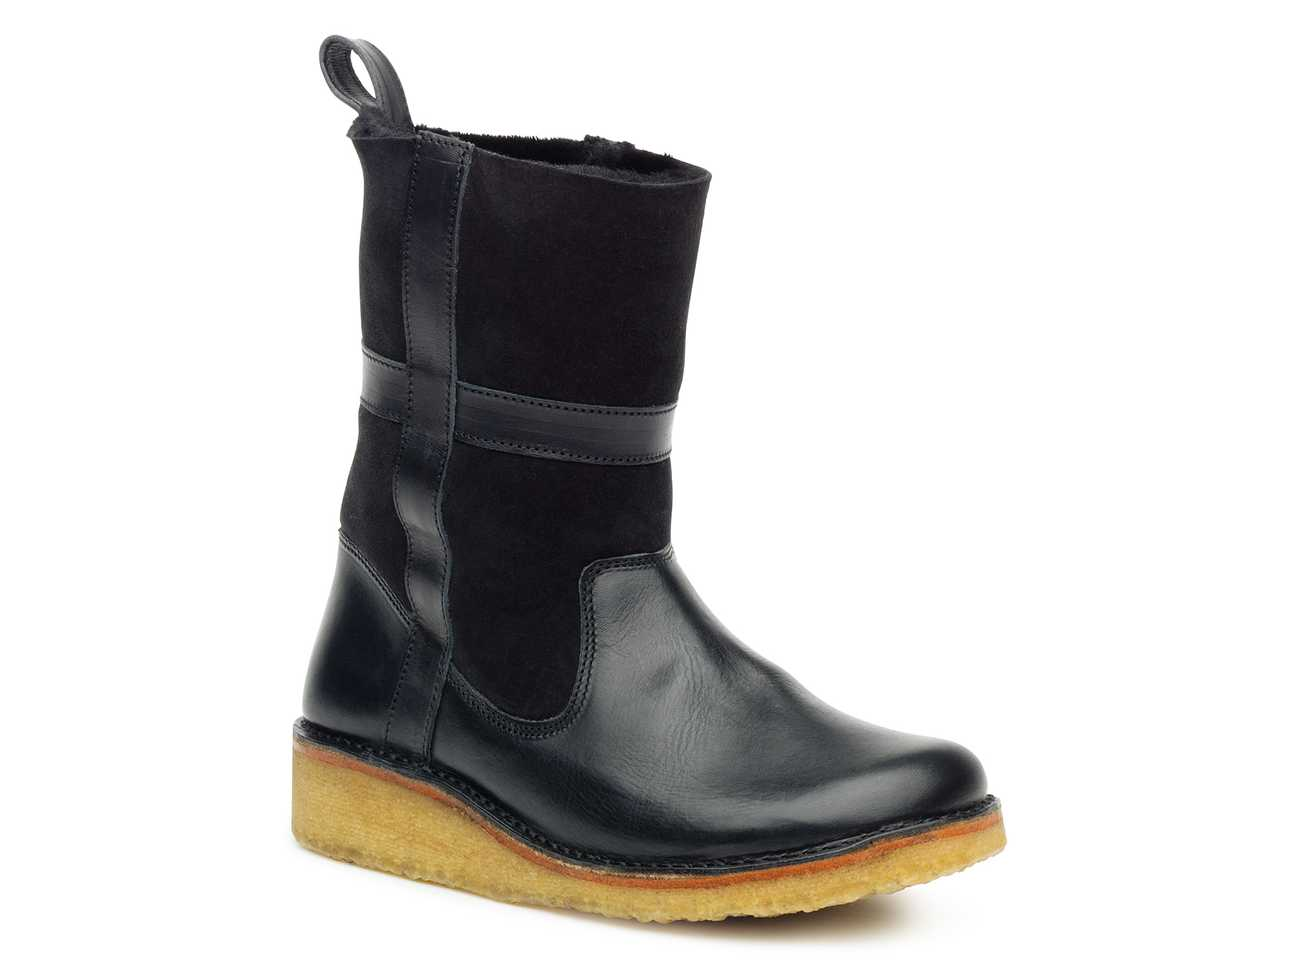 Sherling Rubber Boot Black